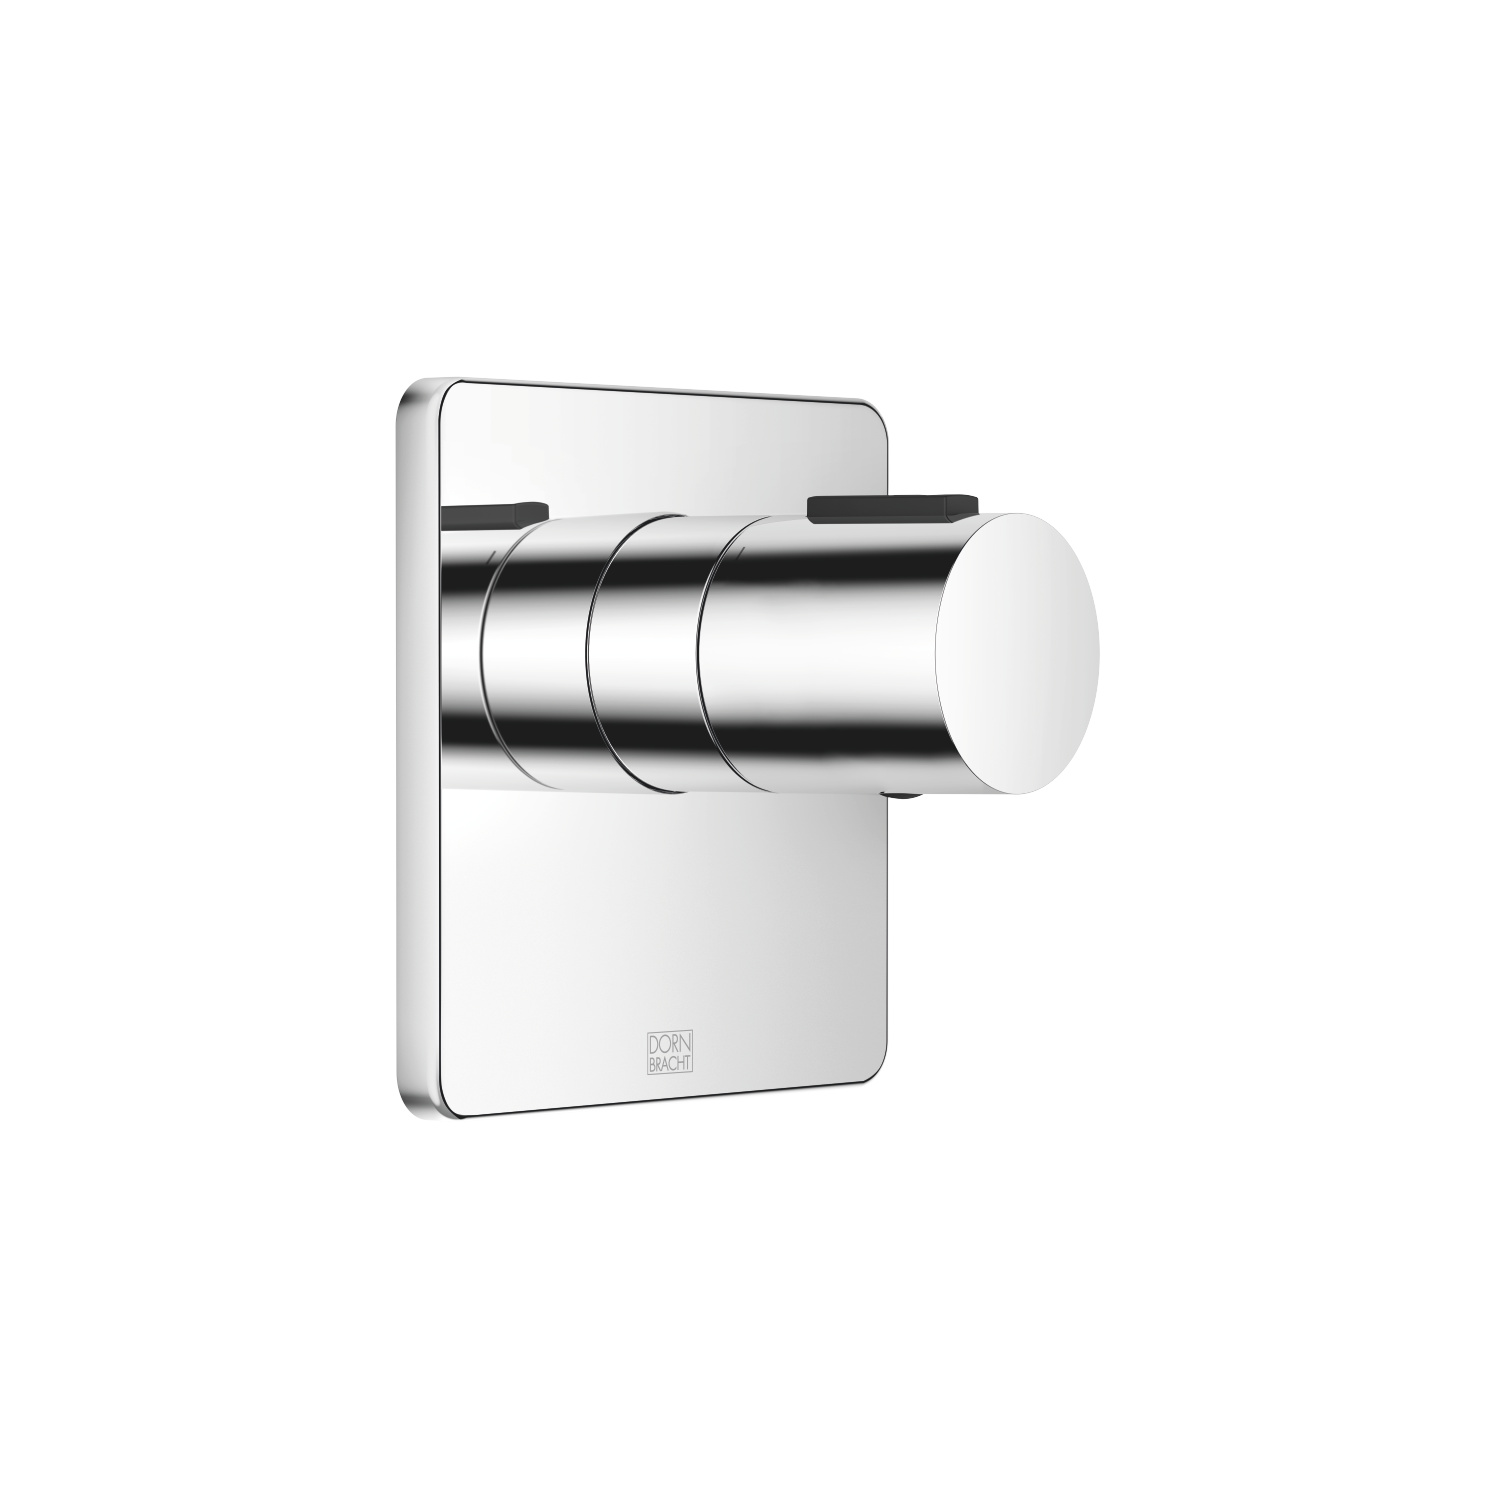 "xTOOL Concealed thermostat without volume control 3/4"" - polished chrome"